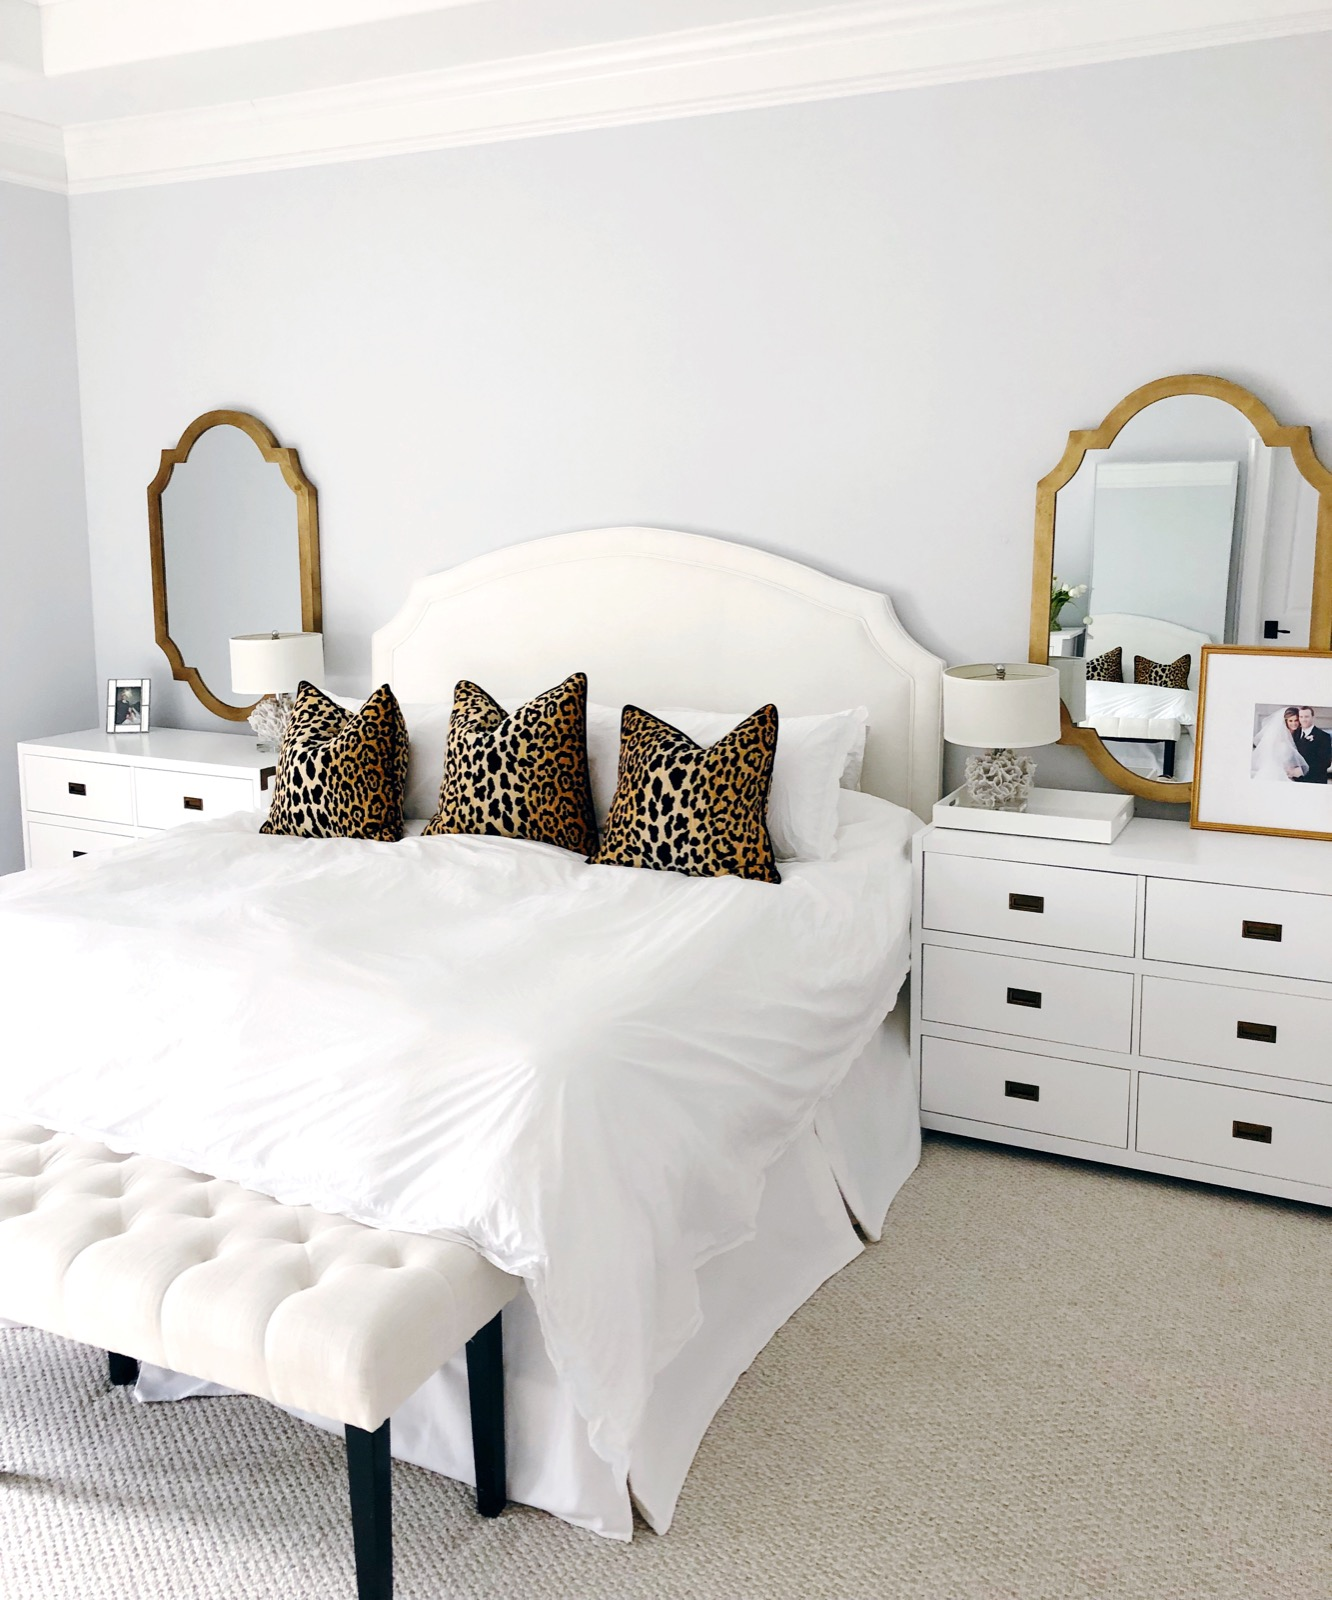 Our Master Bedroom Pillows Are Back In Stock But Going Fast U2014 Snag Them  Here! Below Are My Other Picks.T.J .Maxx Tends To Sell Out Of Popular Items  Quickly. ...